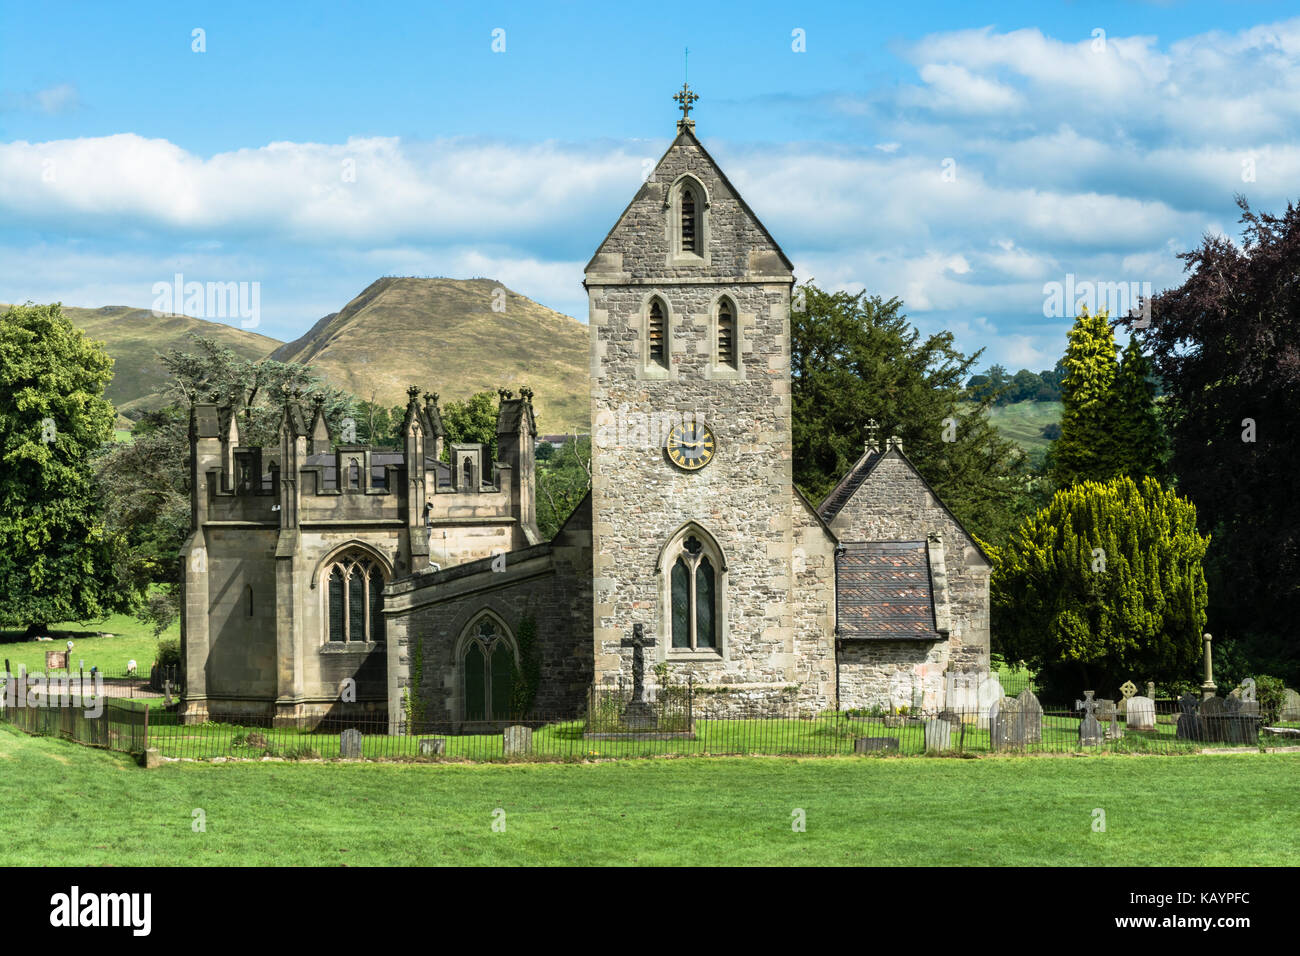 Ilam, Staffordshire, UK: Church of the Holy Cross, a small stone church near the village of Ilam, close to Peack - Stock Image